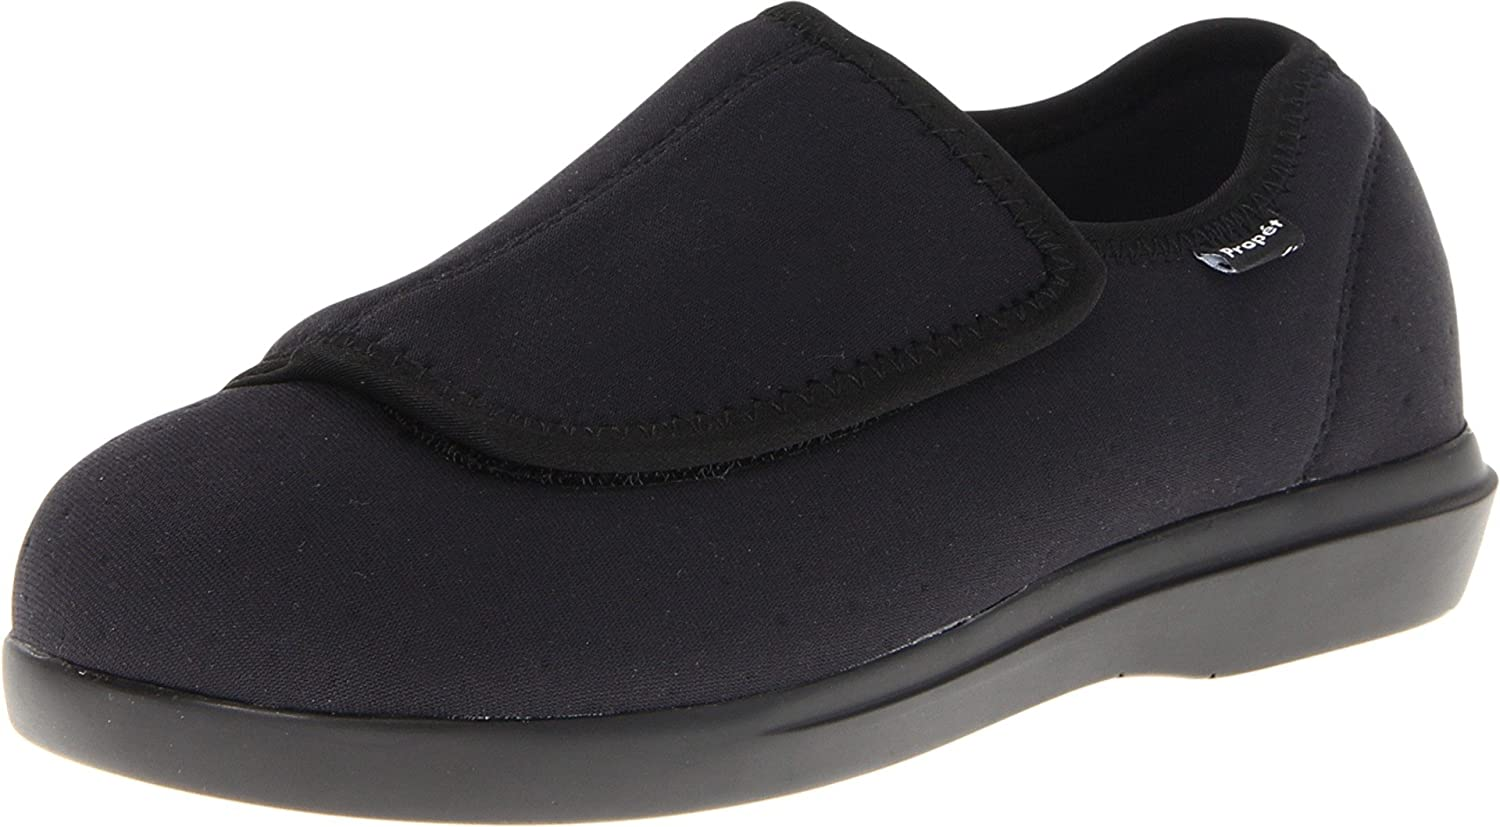 Propét Women's Cush N Foot Slipper B007M087WO 6.5 M (B) US|Black